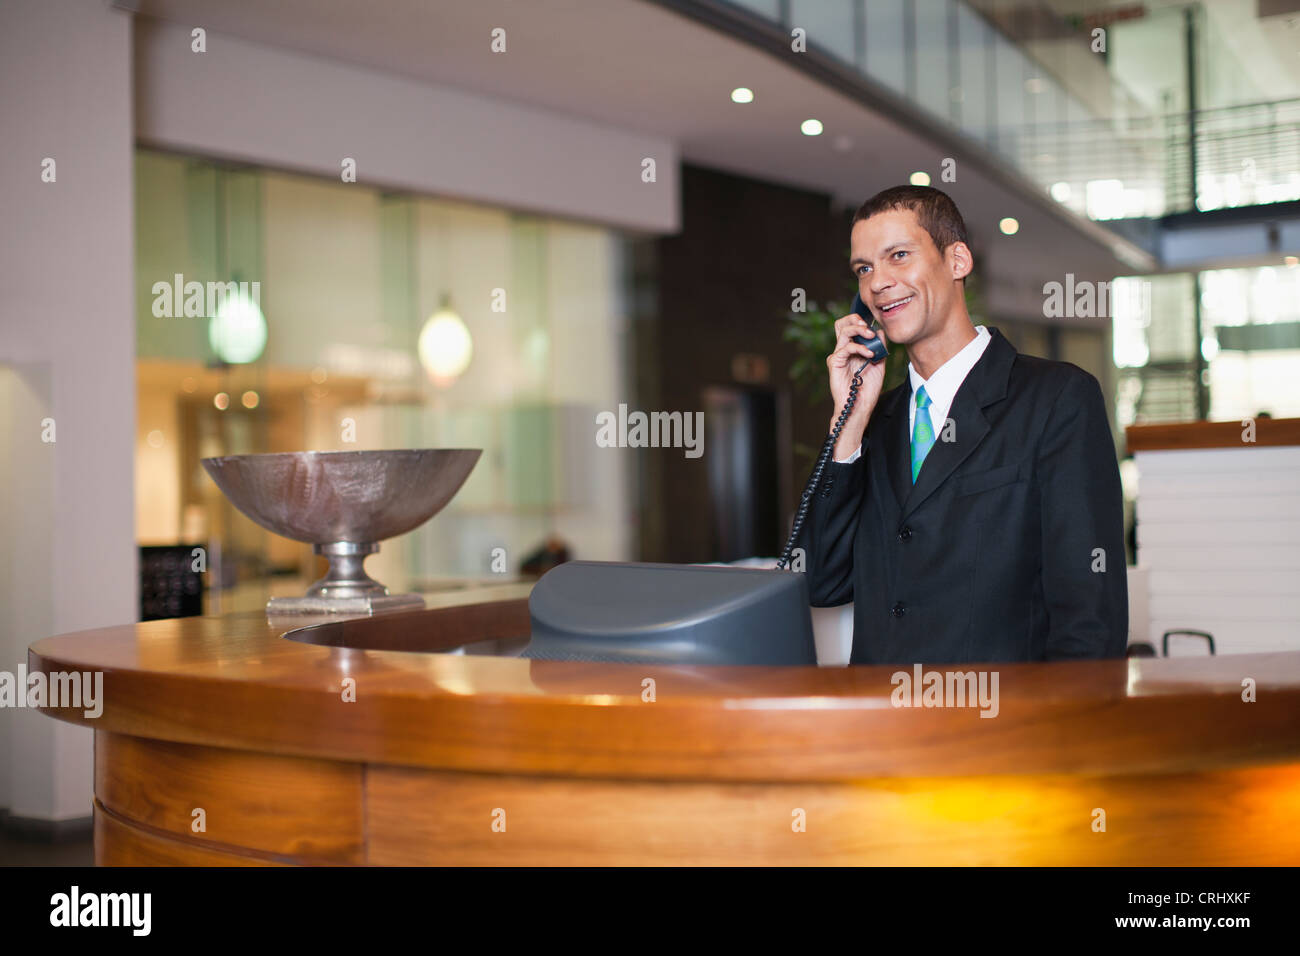 Hotel concierge talking on phone - Stock Image